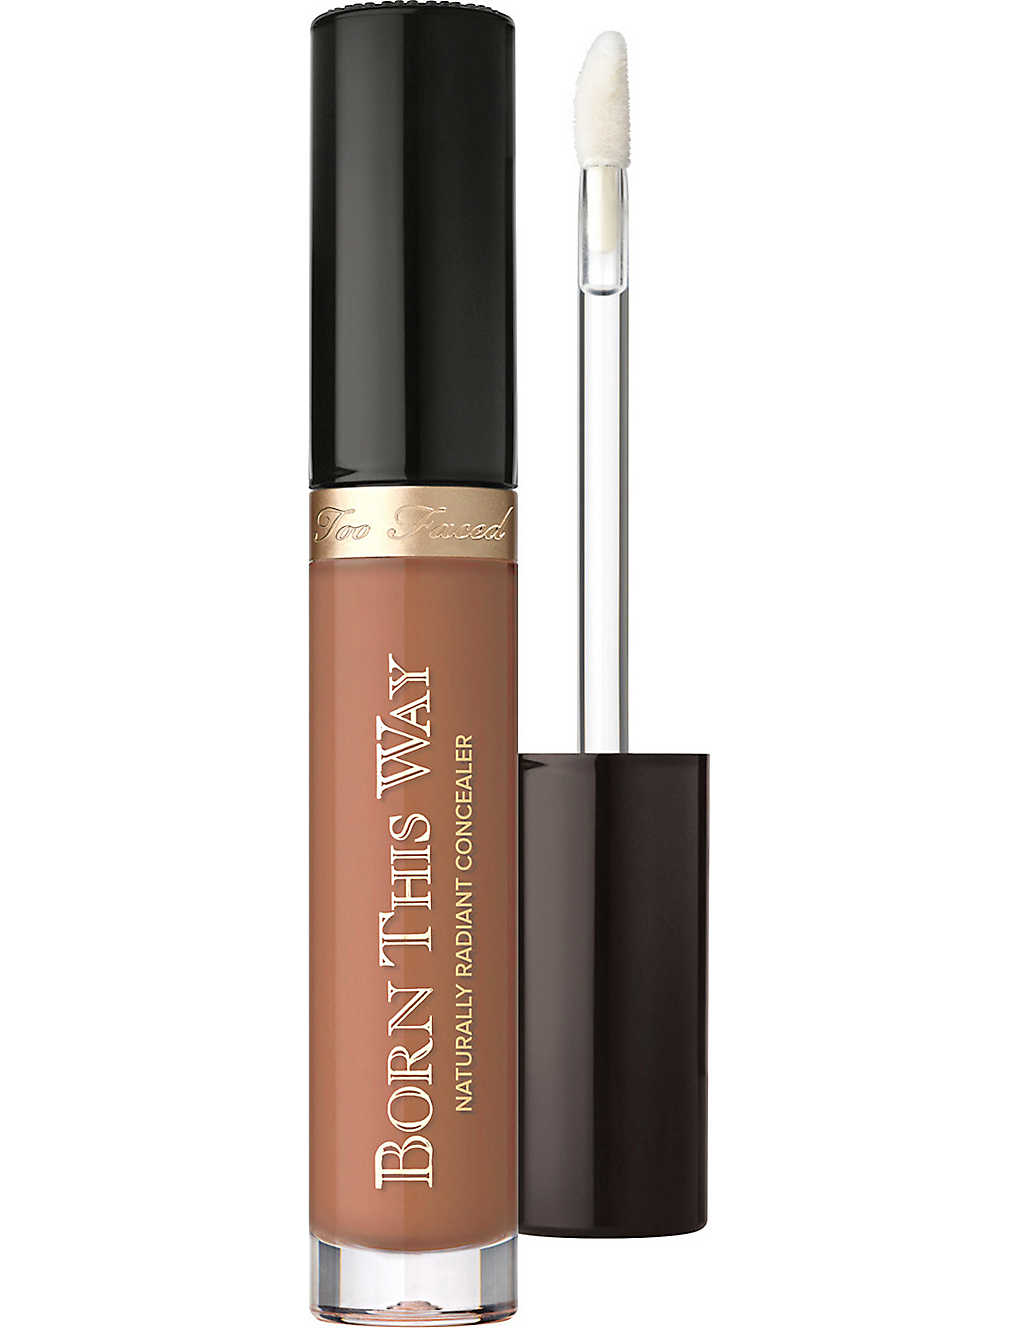 TOO FACED: Born This Way concealer